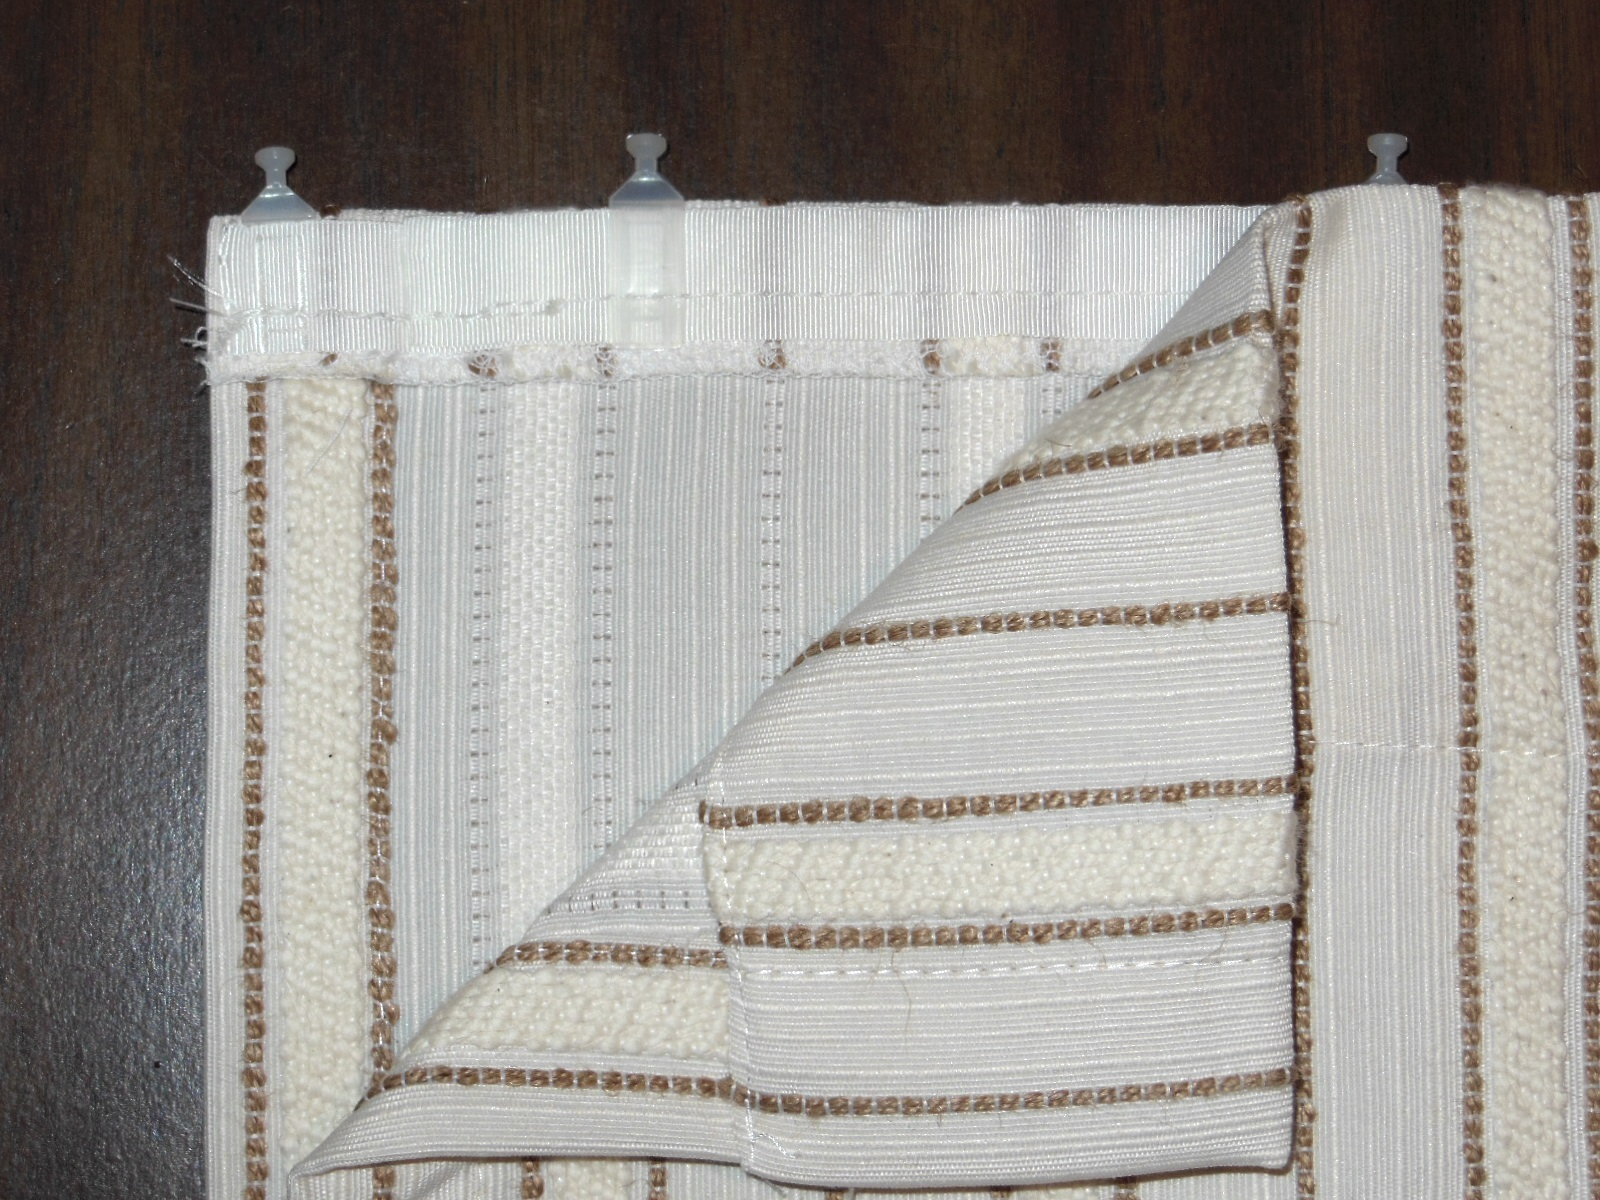 Sew Your Own Cabin Curtains and Save – The $tingy Sailor